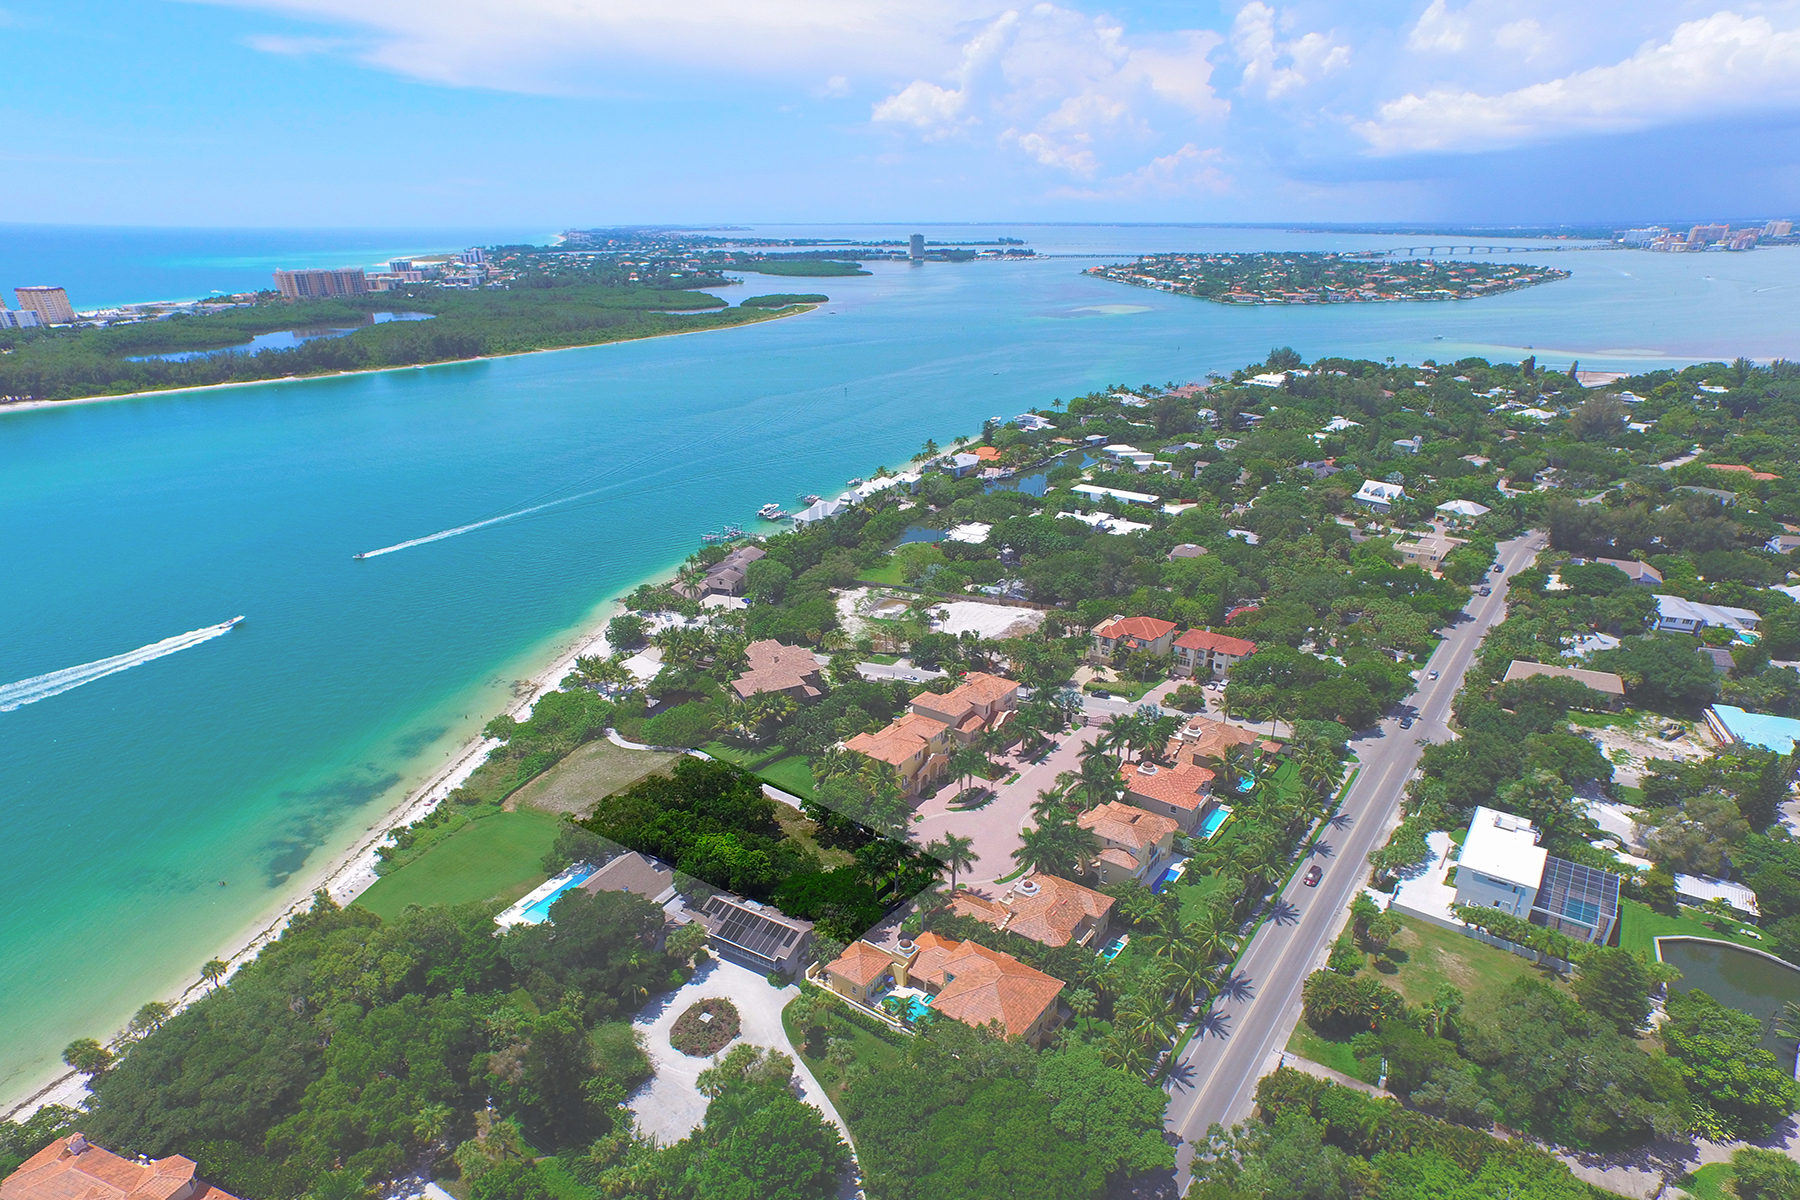 Land for Sale at SOLYMAR 3928 Solymar Dr - Sarasota, Florida, 34242 United States